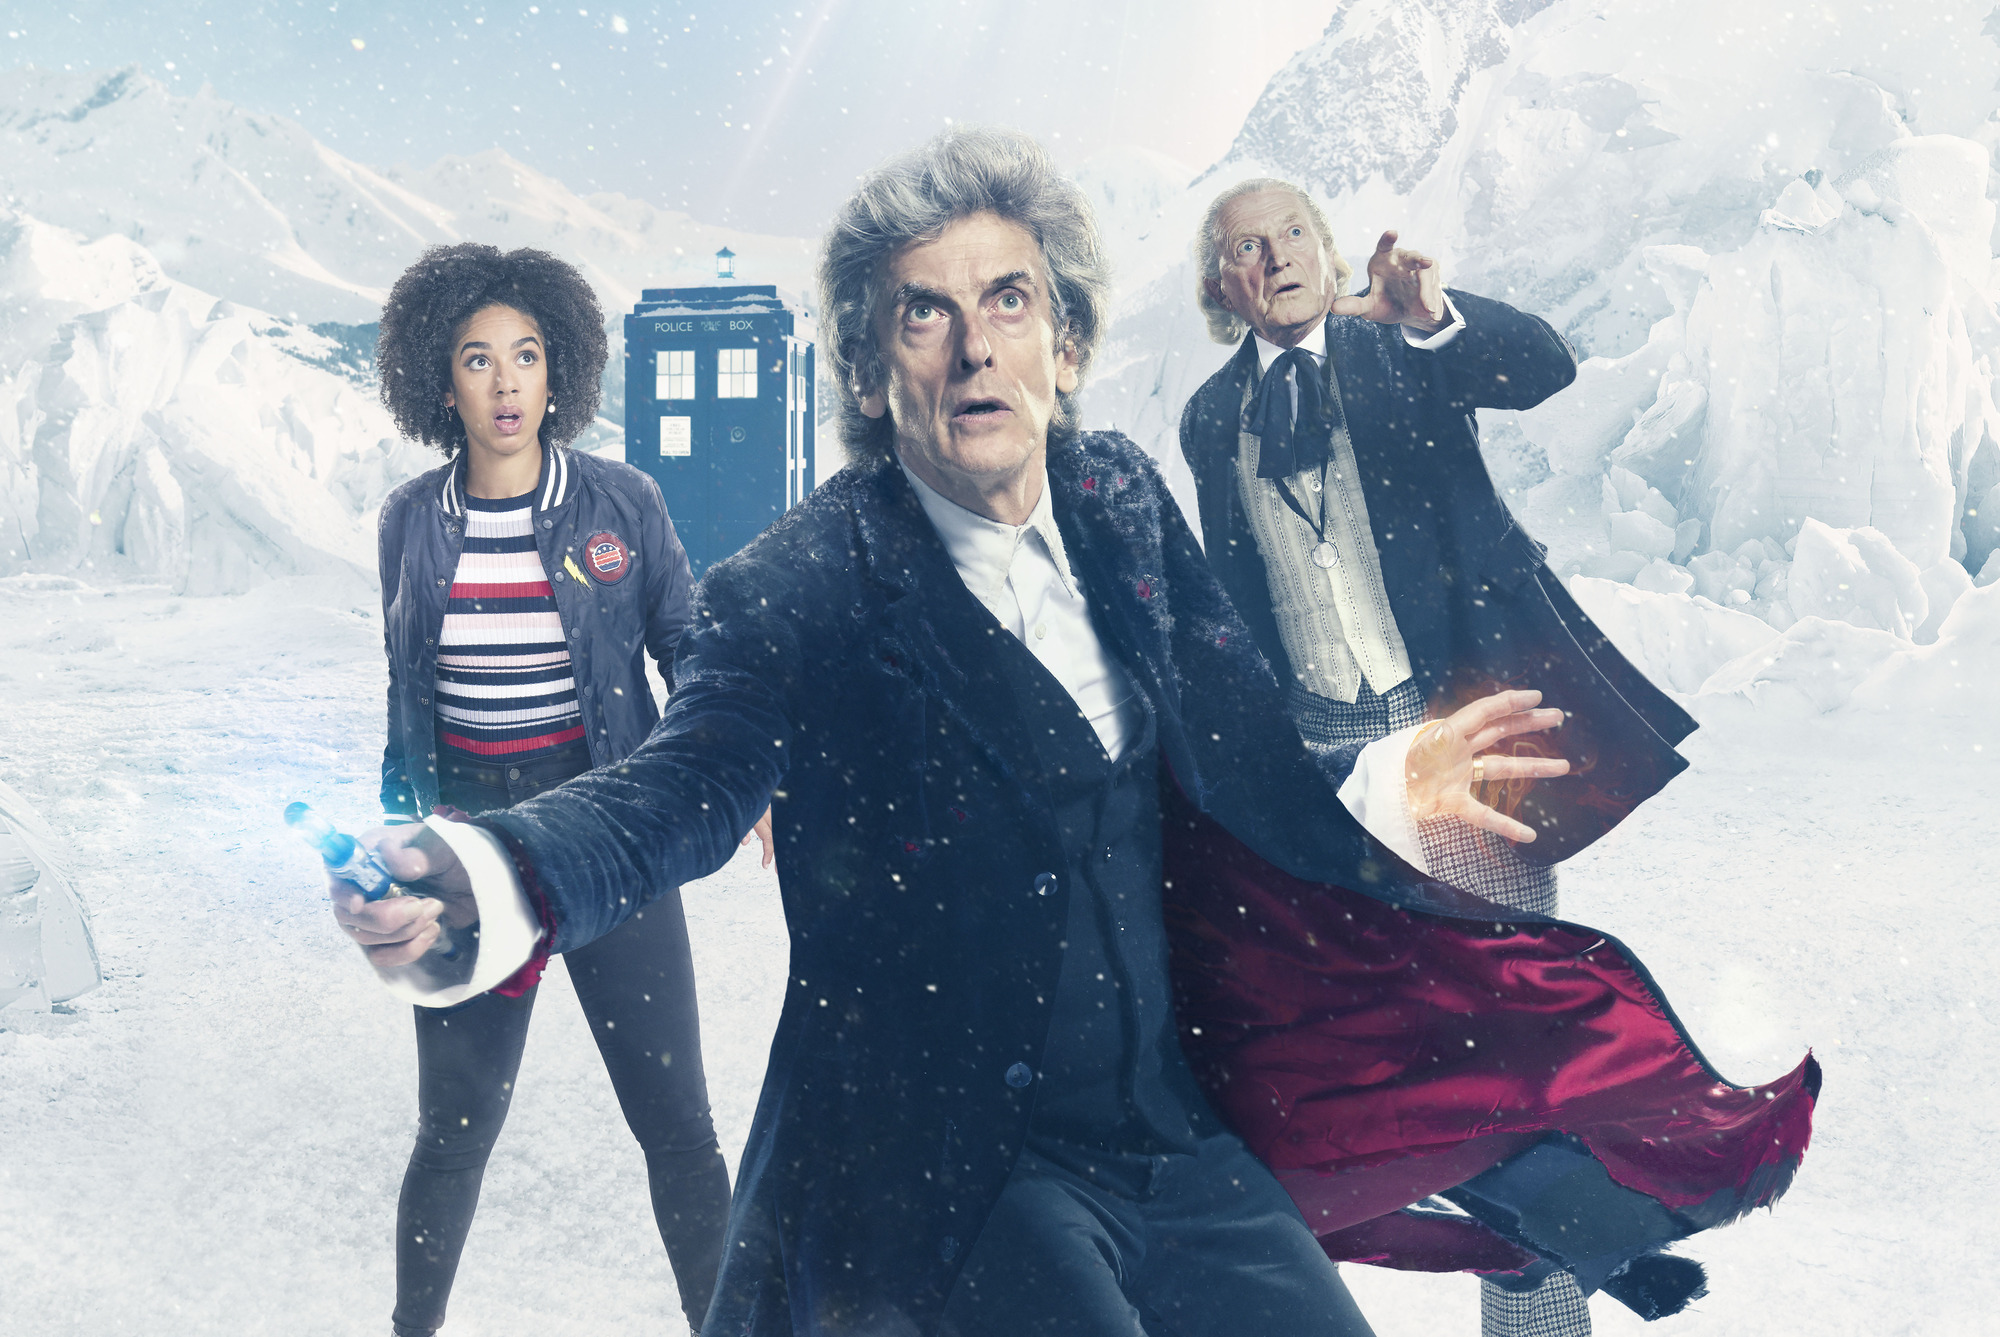 Pearl Mackie, Peter Capaldi and David Bradley in the Doctor Who Christmas special